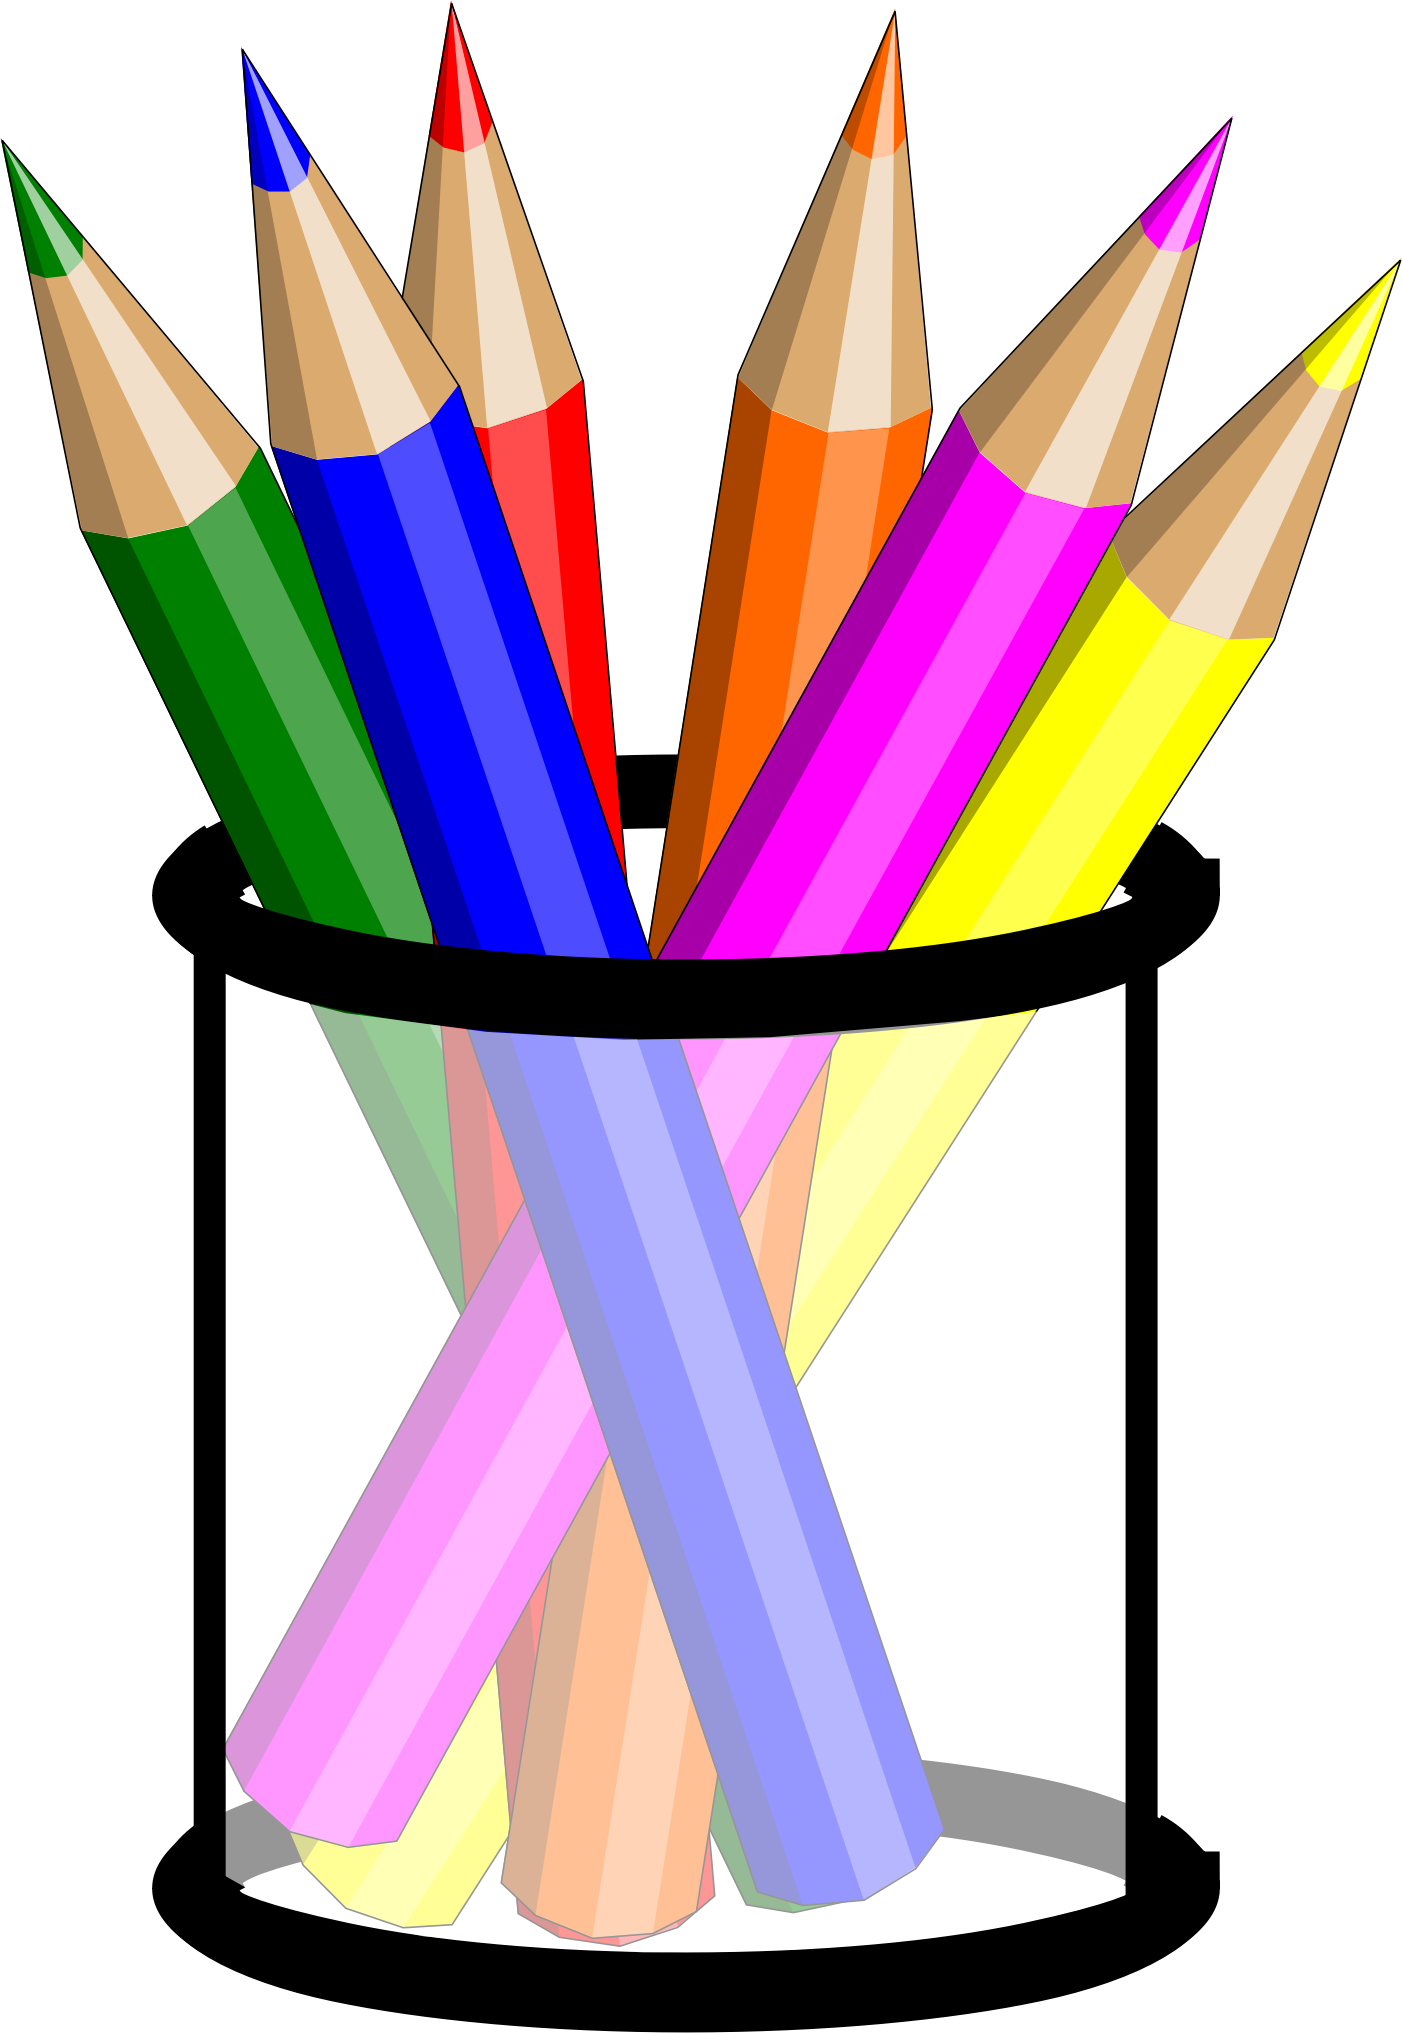 Piano clipart colourful. Pencil cup by hsayin